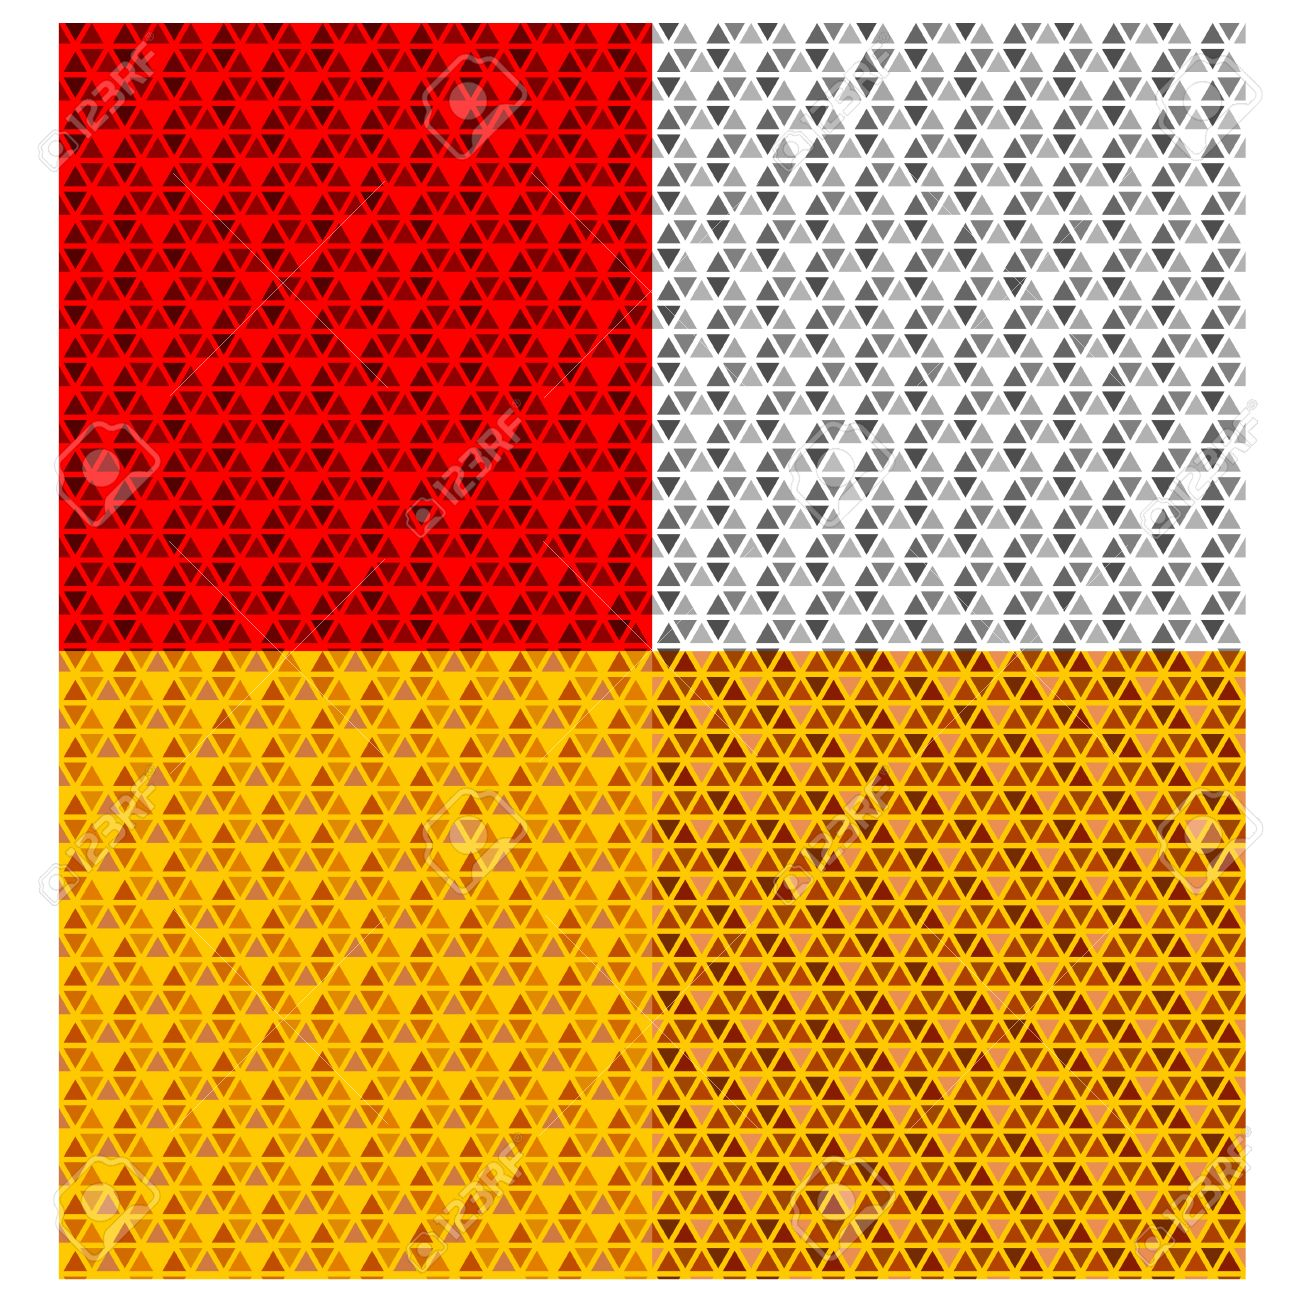 Vehicle Reflector Seamless Pattern Royalty Free Cliparts, Vectors ... for Reflector Light Texture  5lp5wja